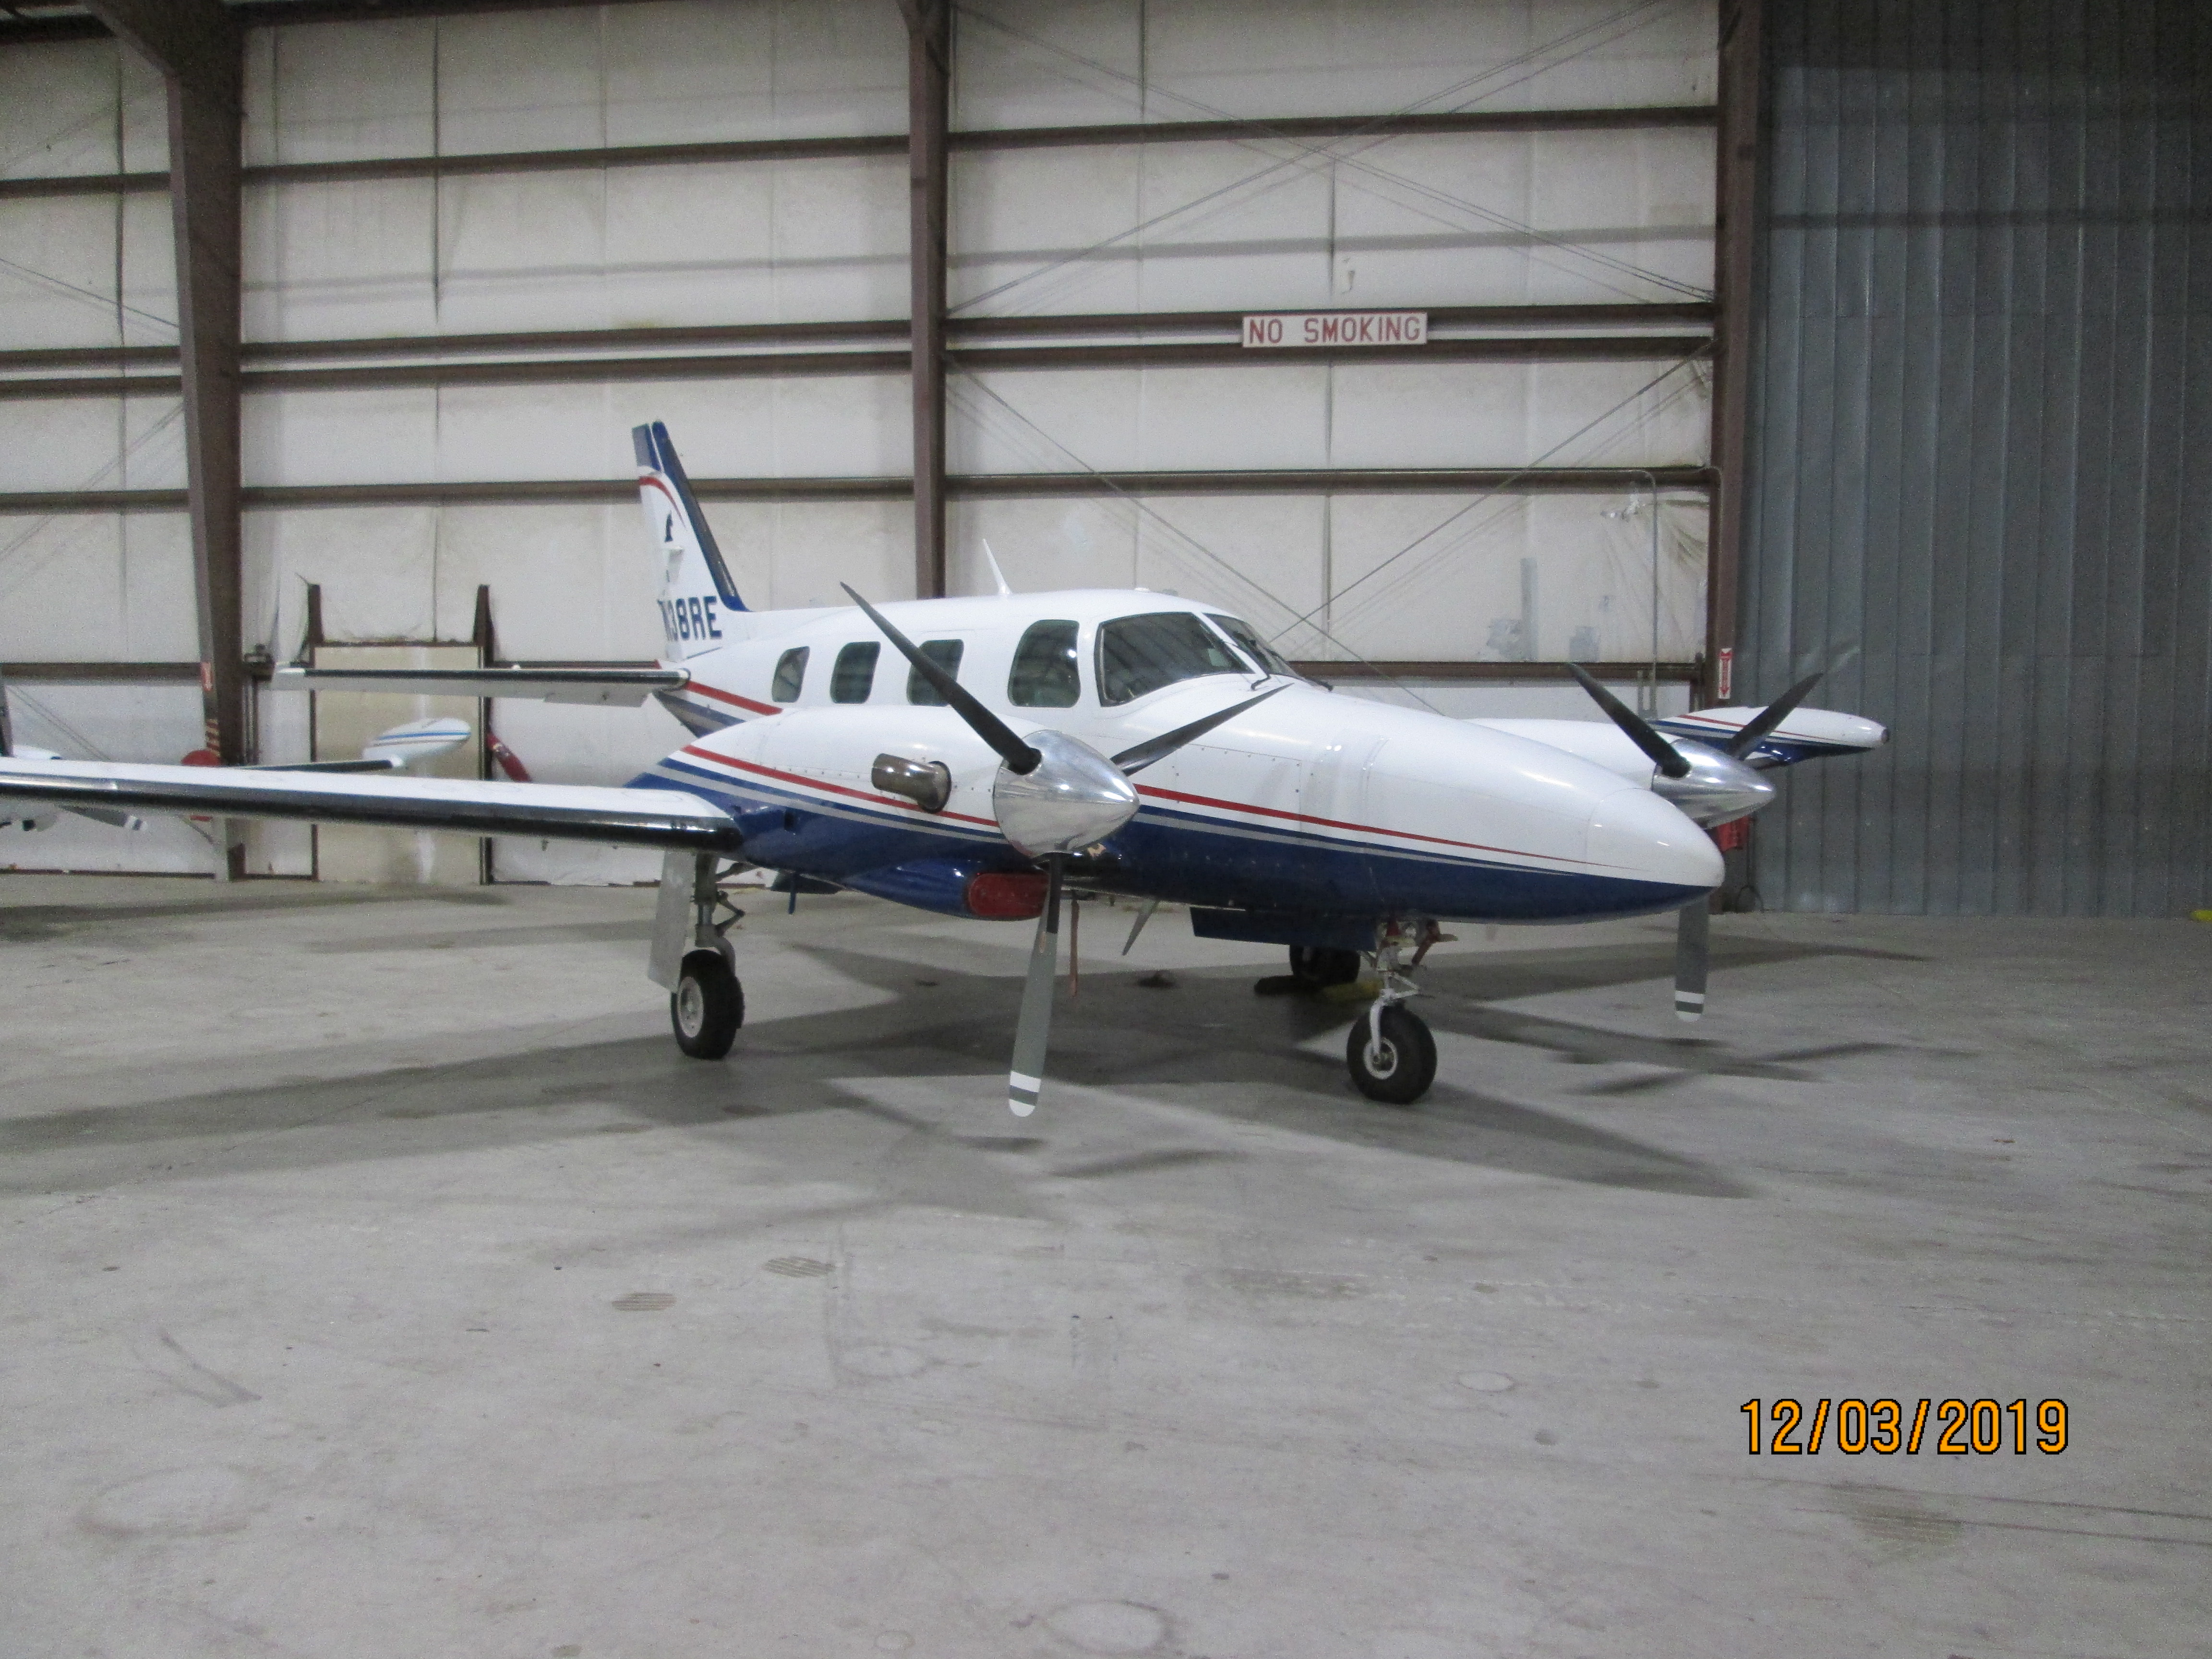 Aircraft Listing - Cheyenne I PA-31T-500 listed for sale